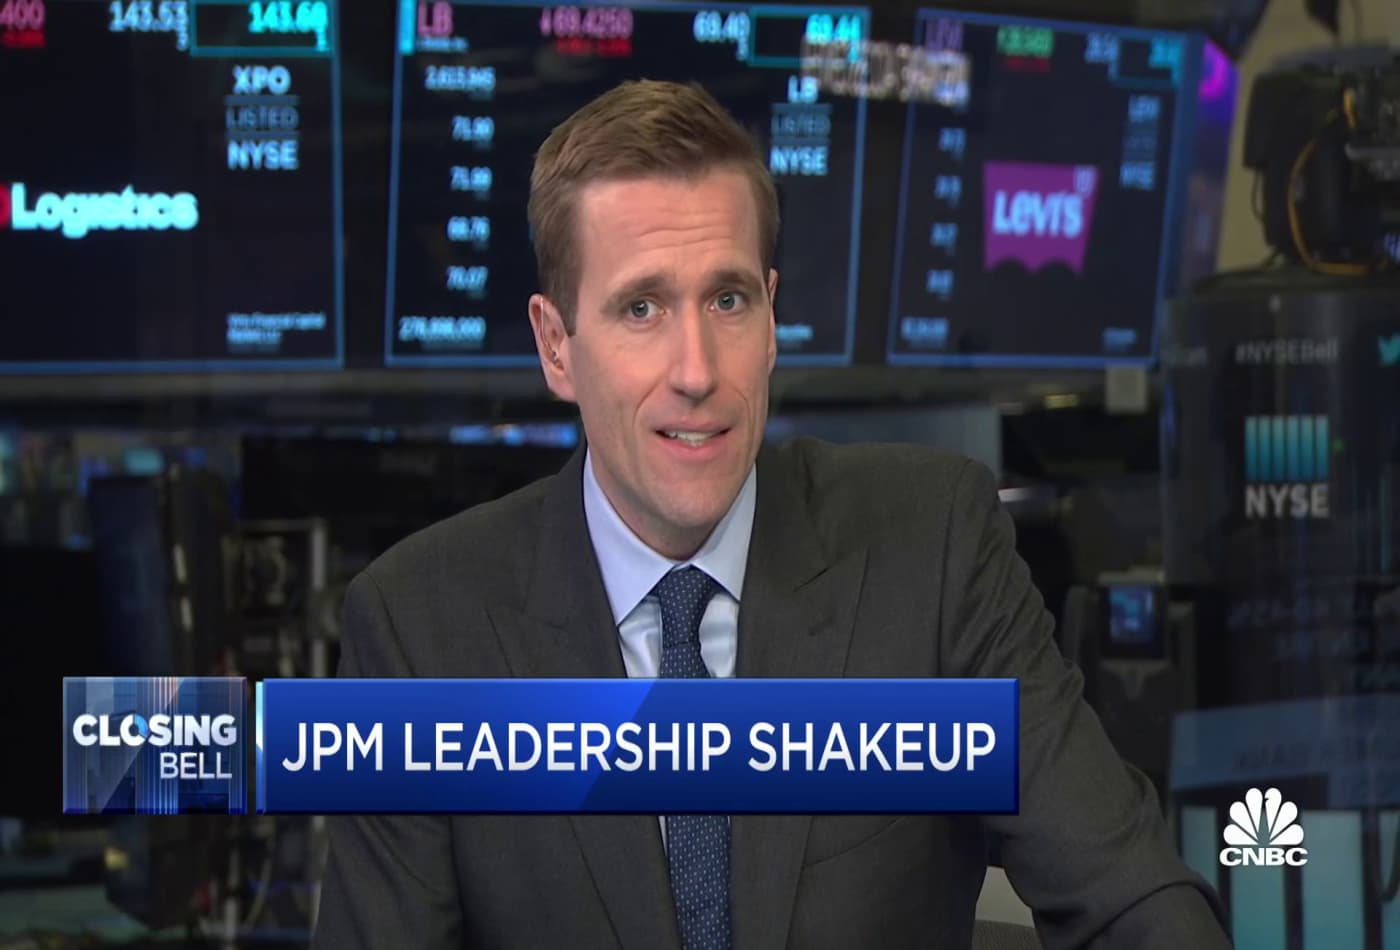 Here's what to know about J.P. Morgan's leadership shakeup